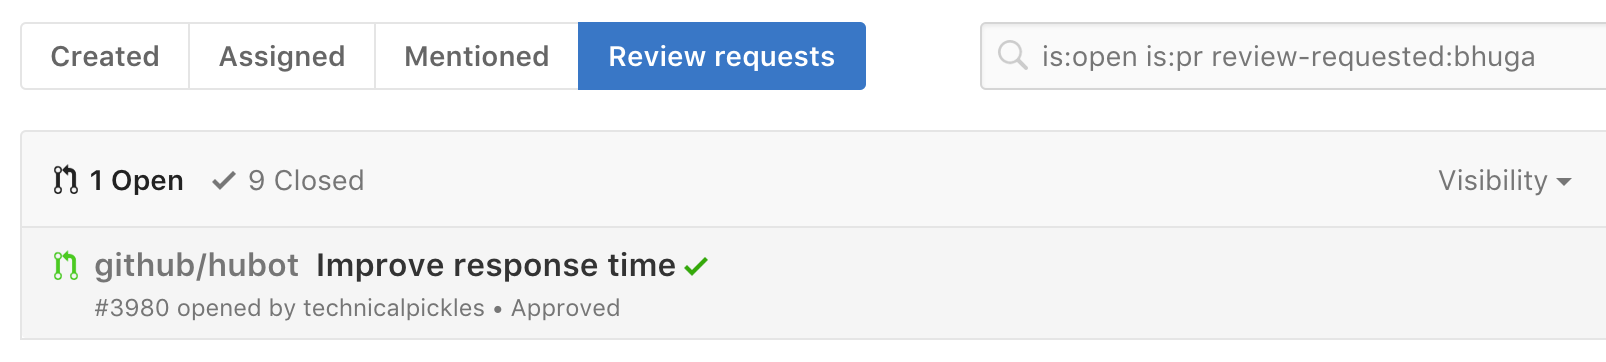 A screenshot showing the global review requests dashboard